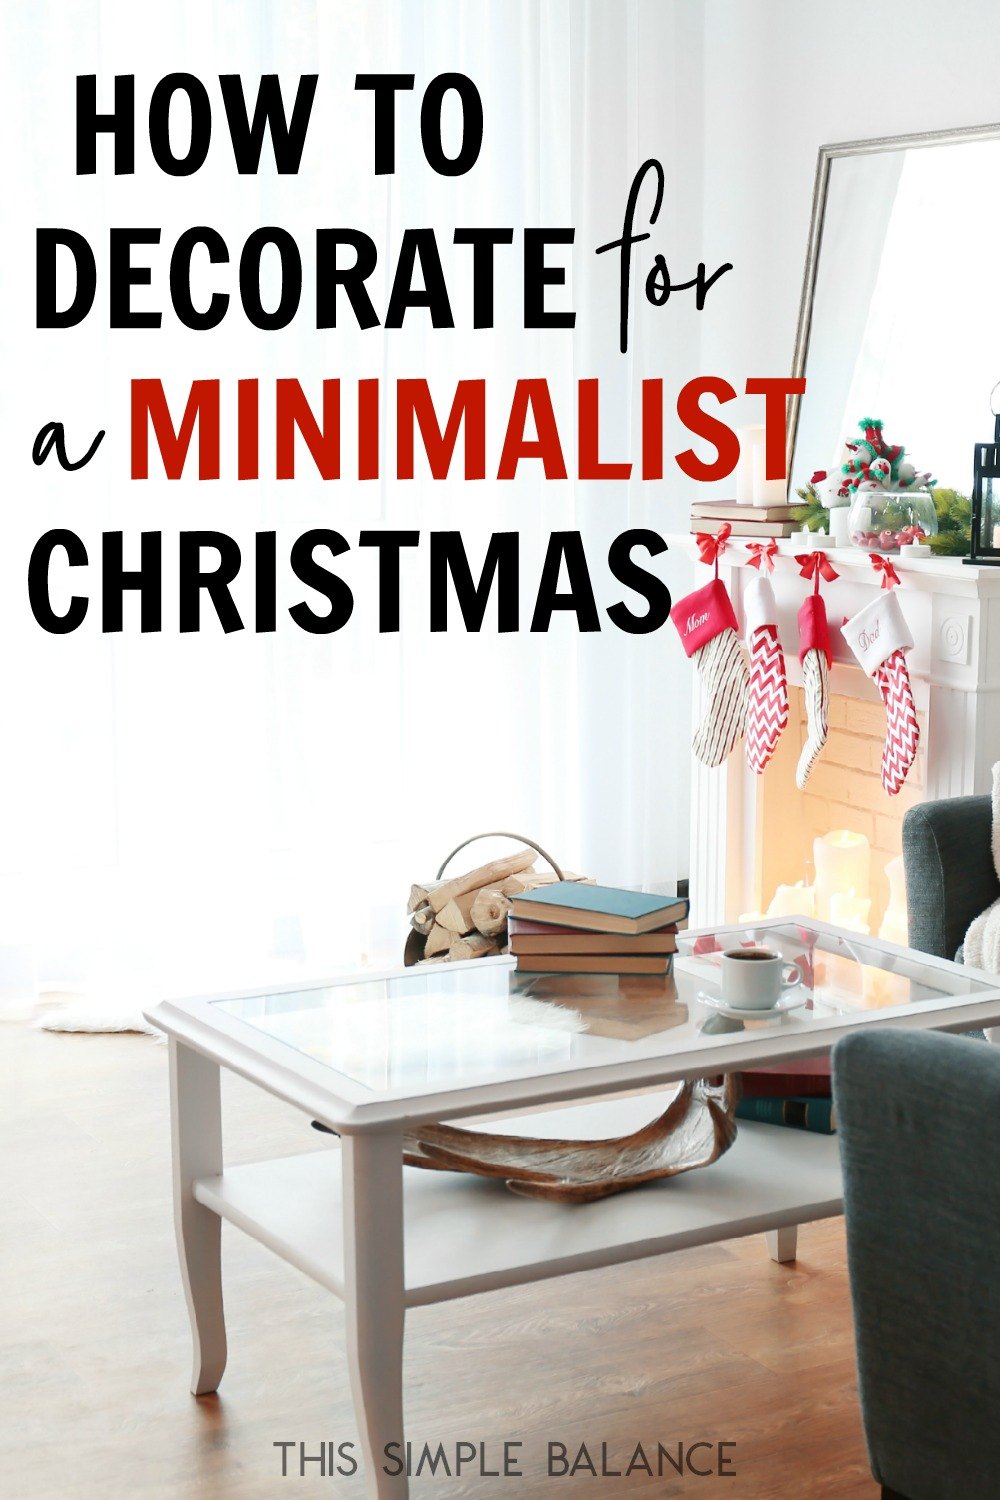 Decorate for a Minimalist Christmas: 3 Super Simple Steps